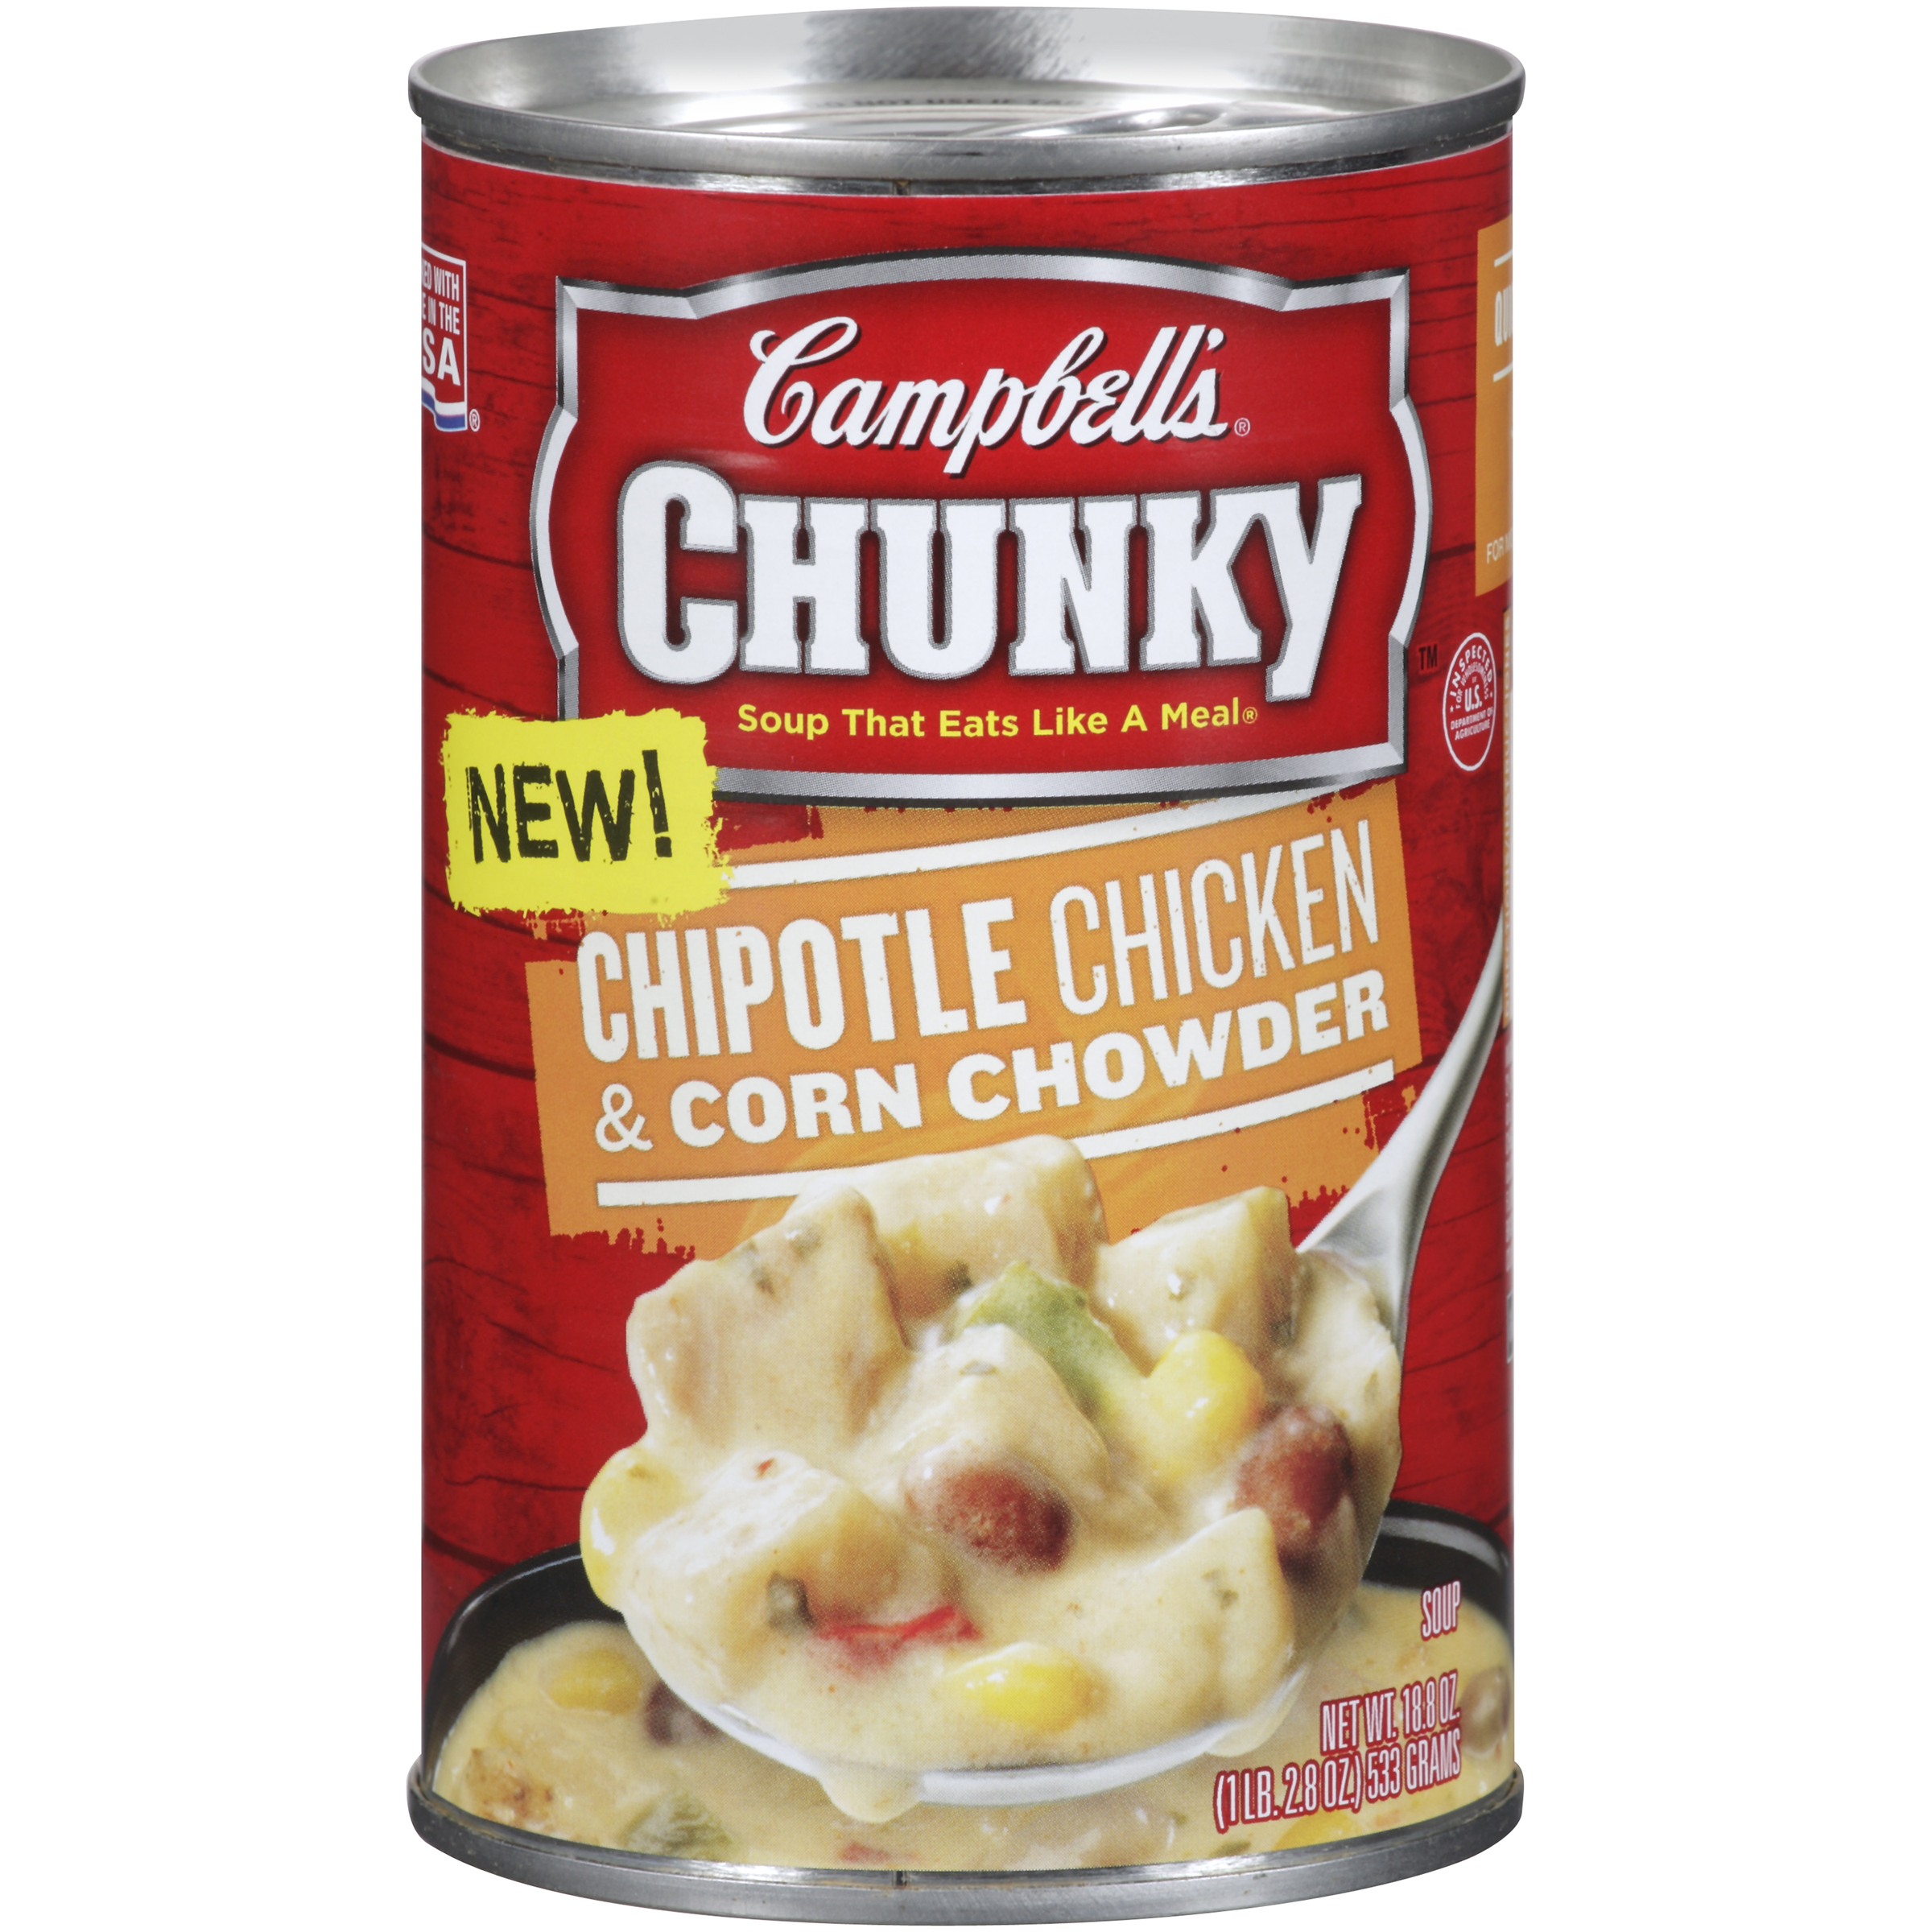 Campbell's Chunky Chipotle Chicken & Corn Chowder 18.8oz